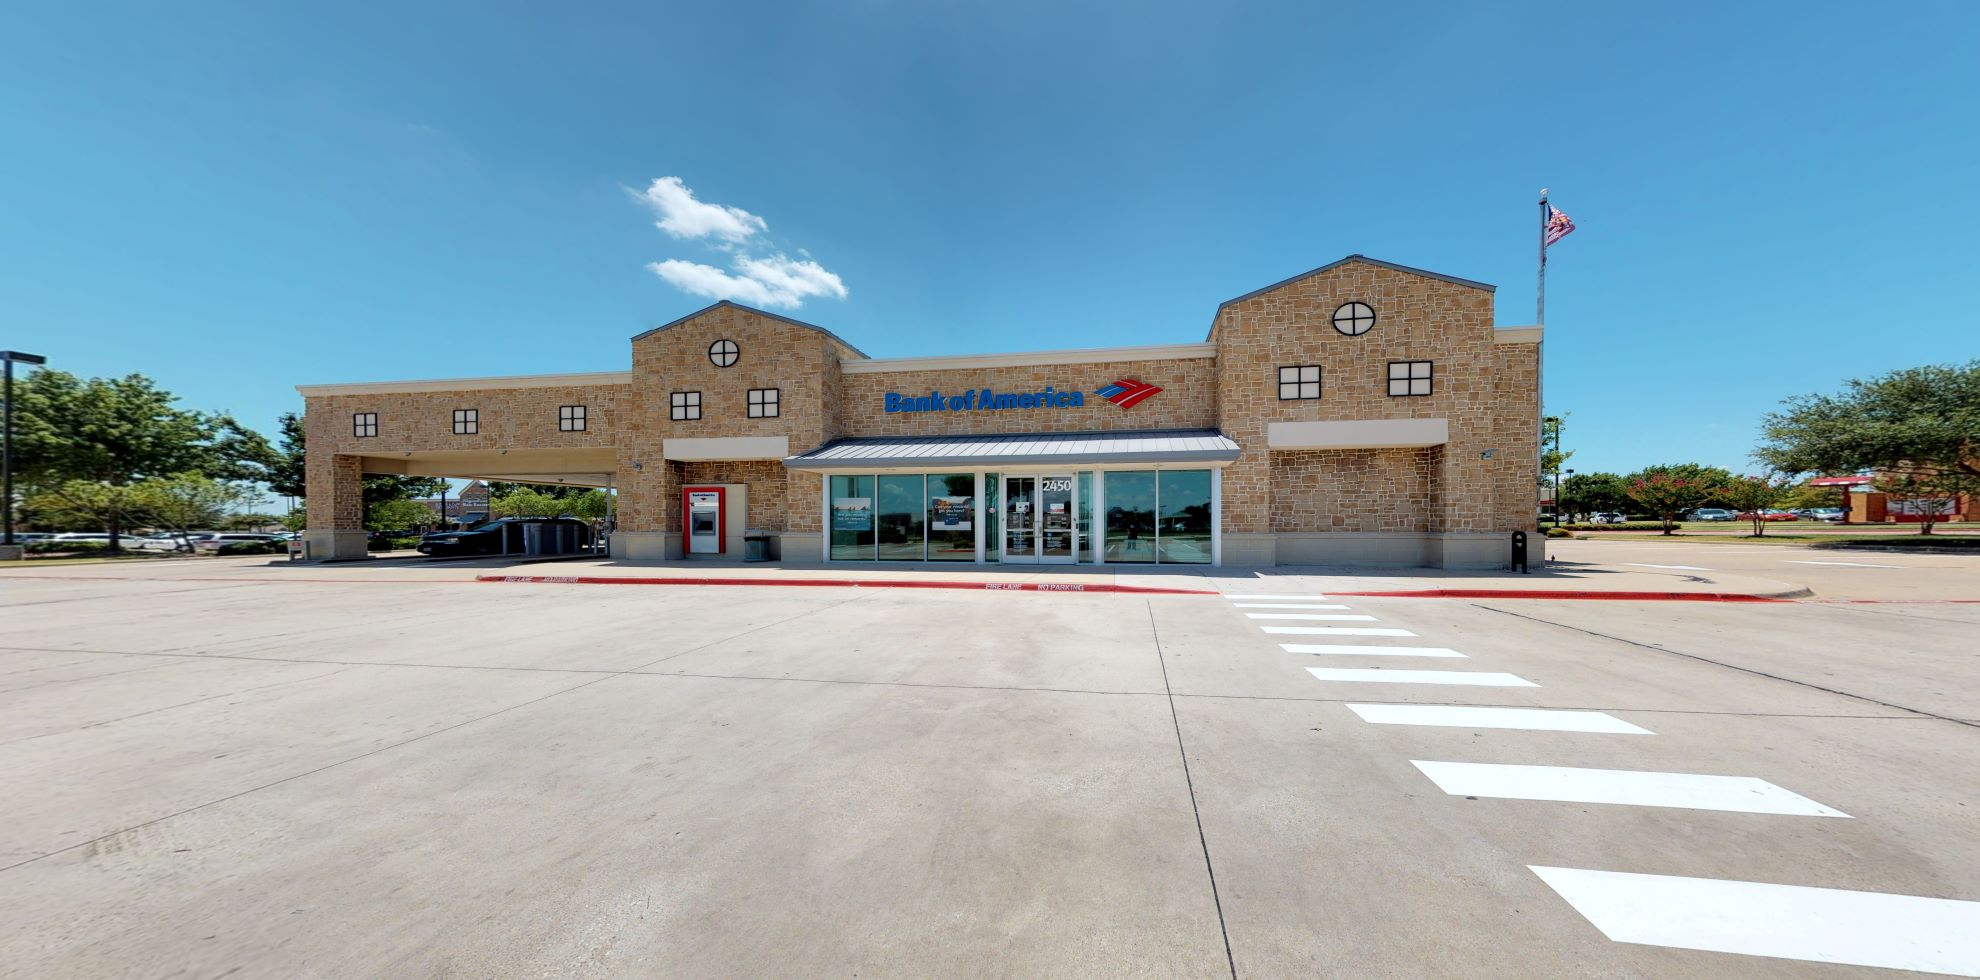 Bank of America financial center with drive-thru ATM and teller   2450 Horizon Rd, Rockwall, TX 75032